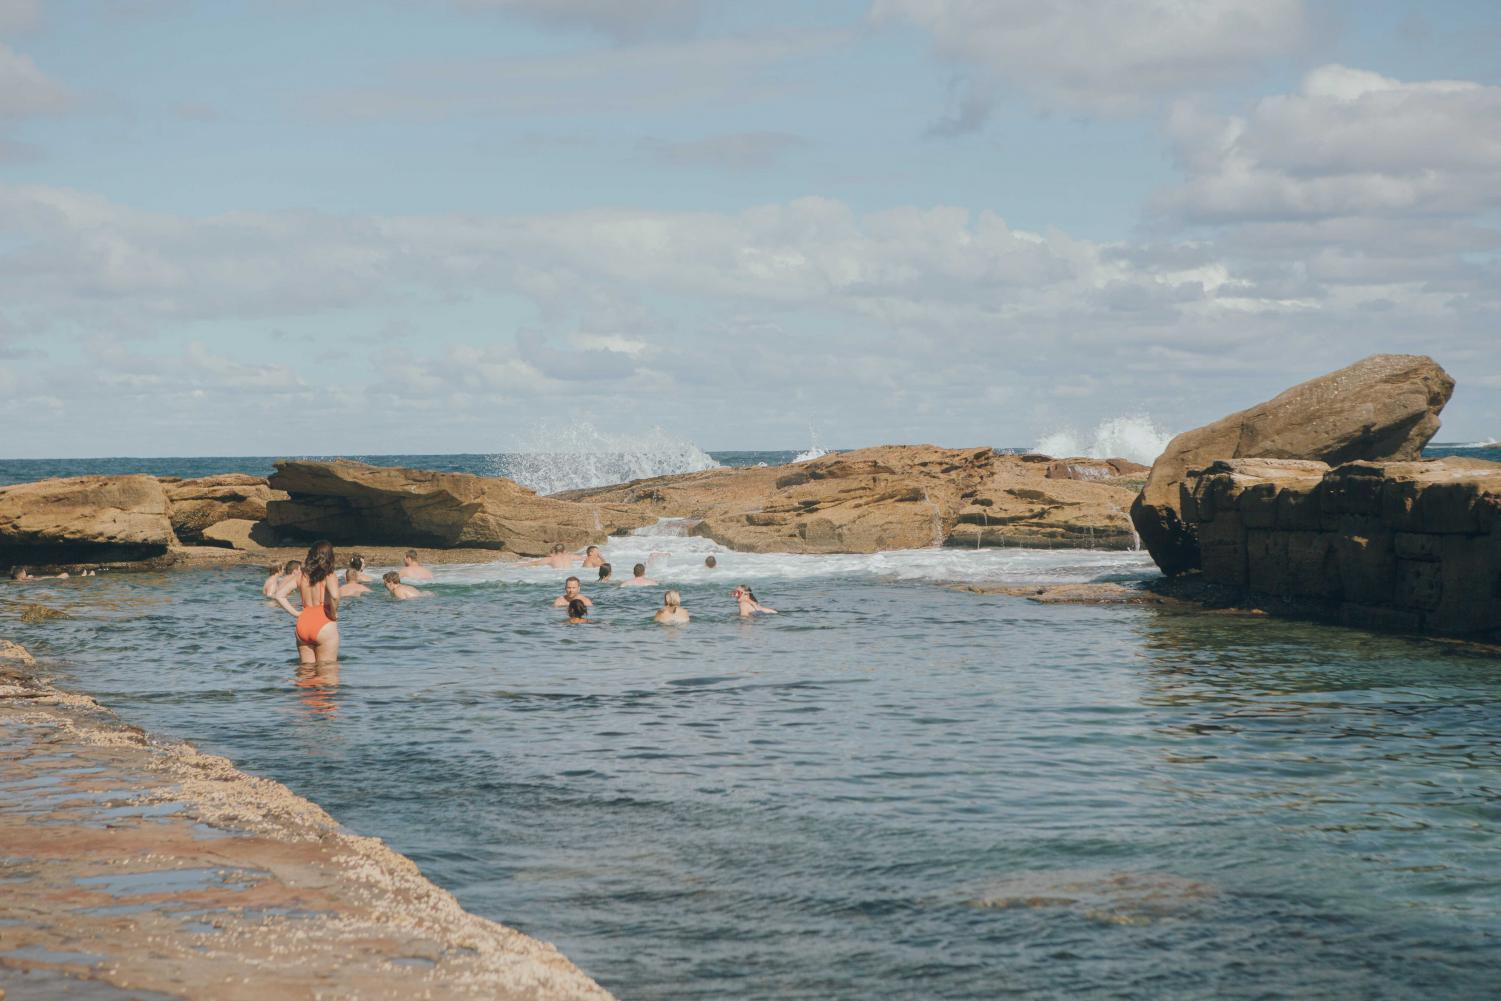 People relax in the rock pools at Coogee Beach in Sydney, Australia.